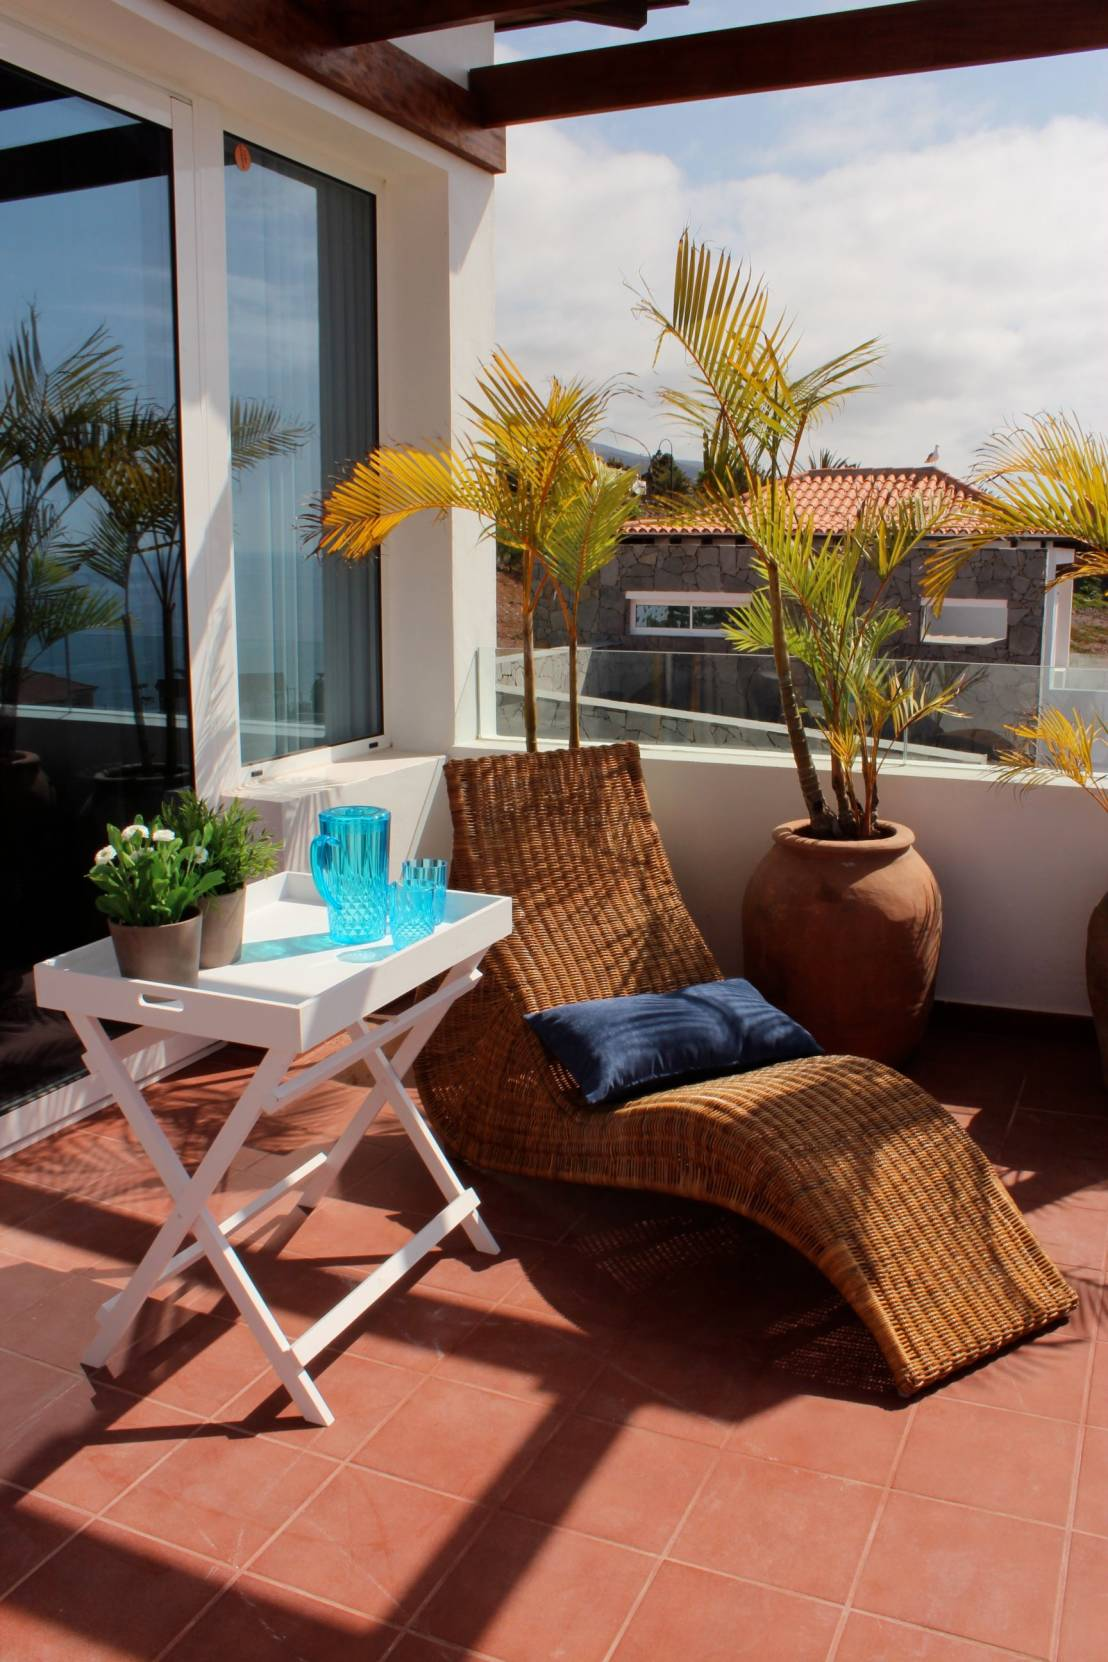 7 grandes ideas para balcones y terrazas peque as for Ideas baratas para decorar